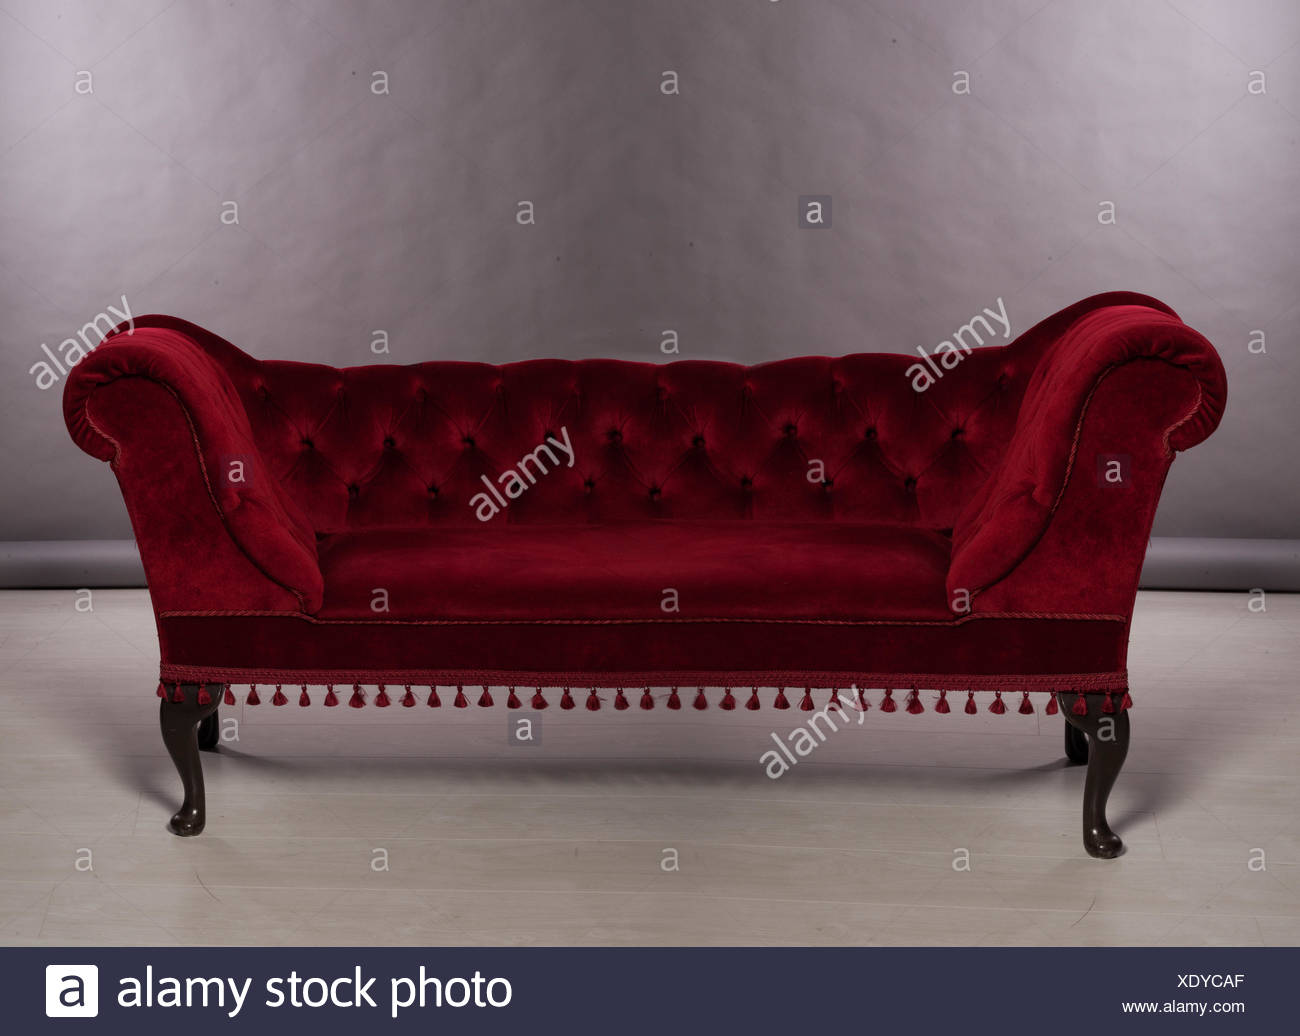 Chesterfield Sofa Stockfotos Chesterfield Sofa Bilder Alamy